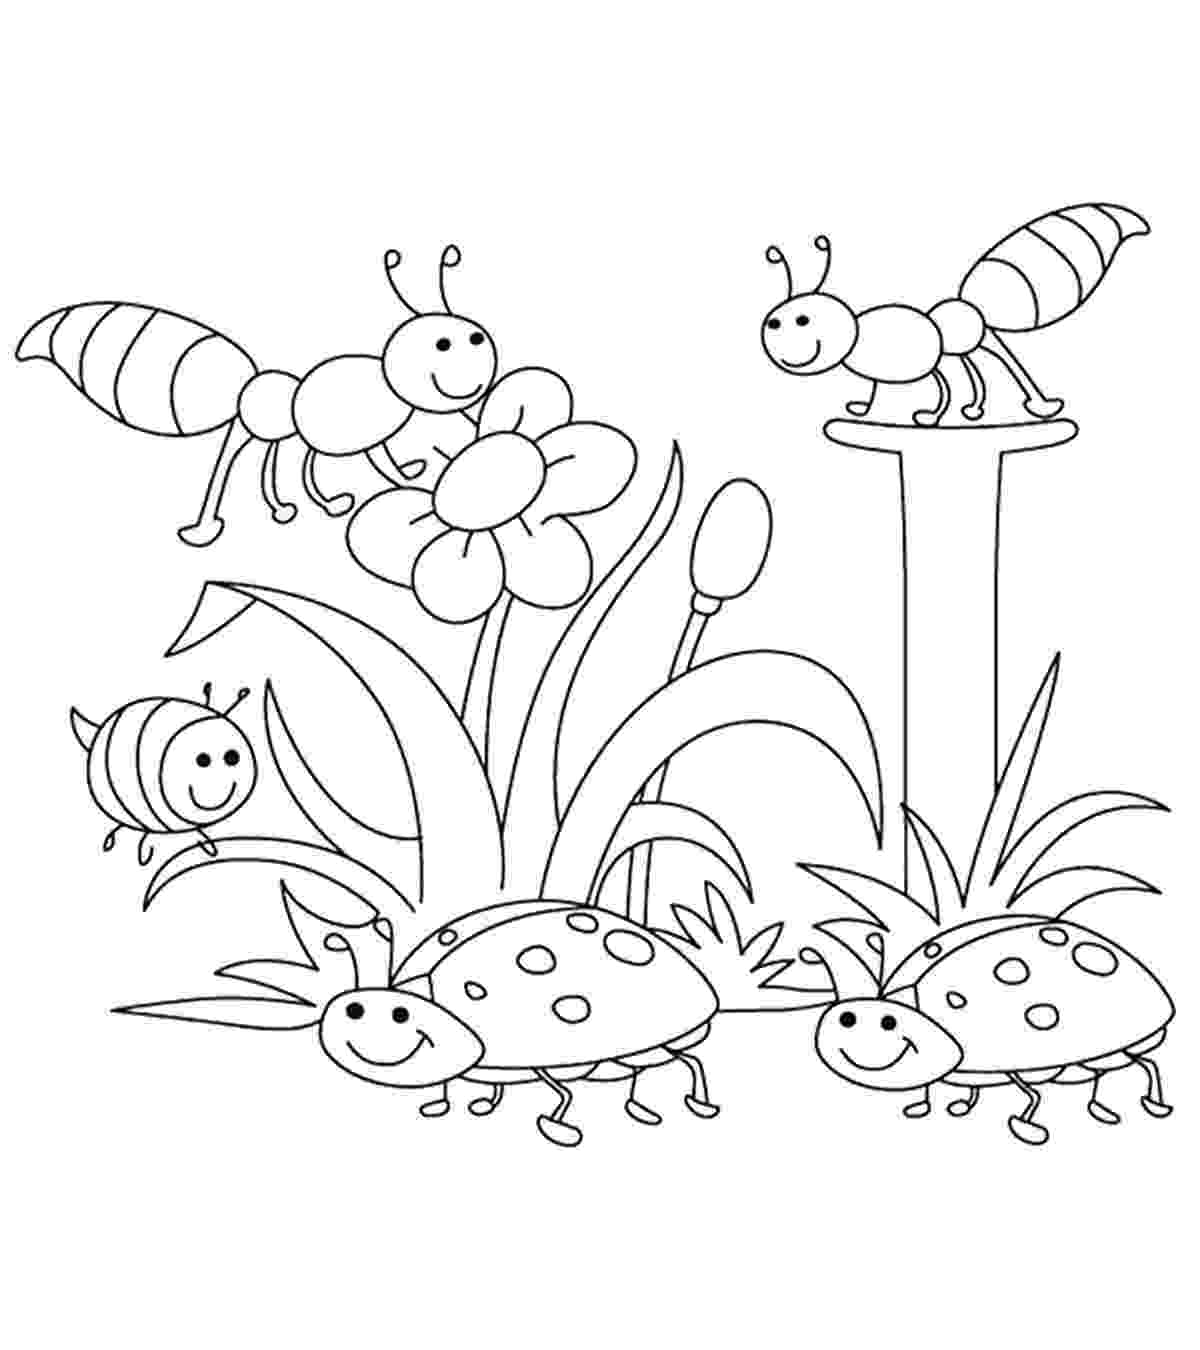 coloring pages of spring flowers spring flowers coloring page free printable coloring pages coloring pages flowers spring of